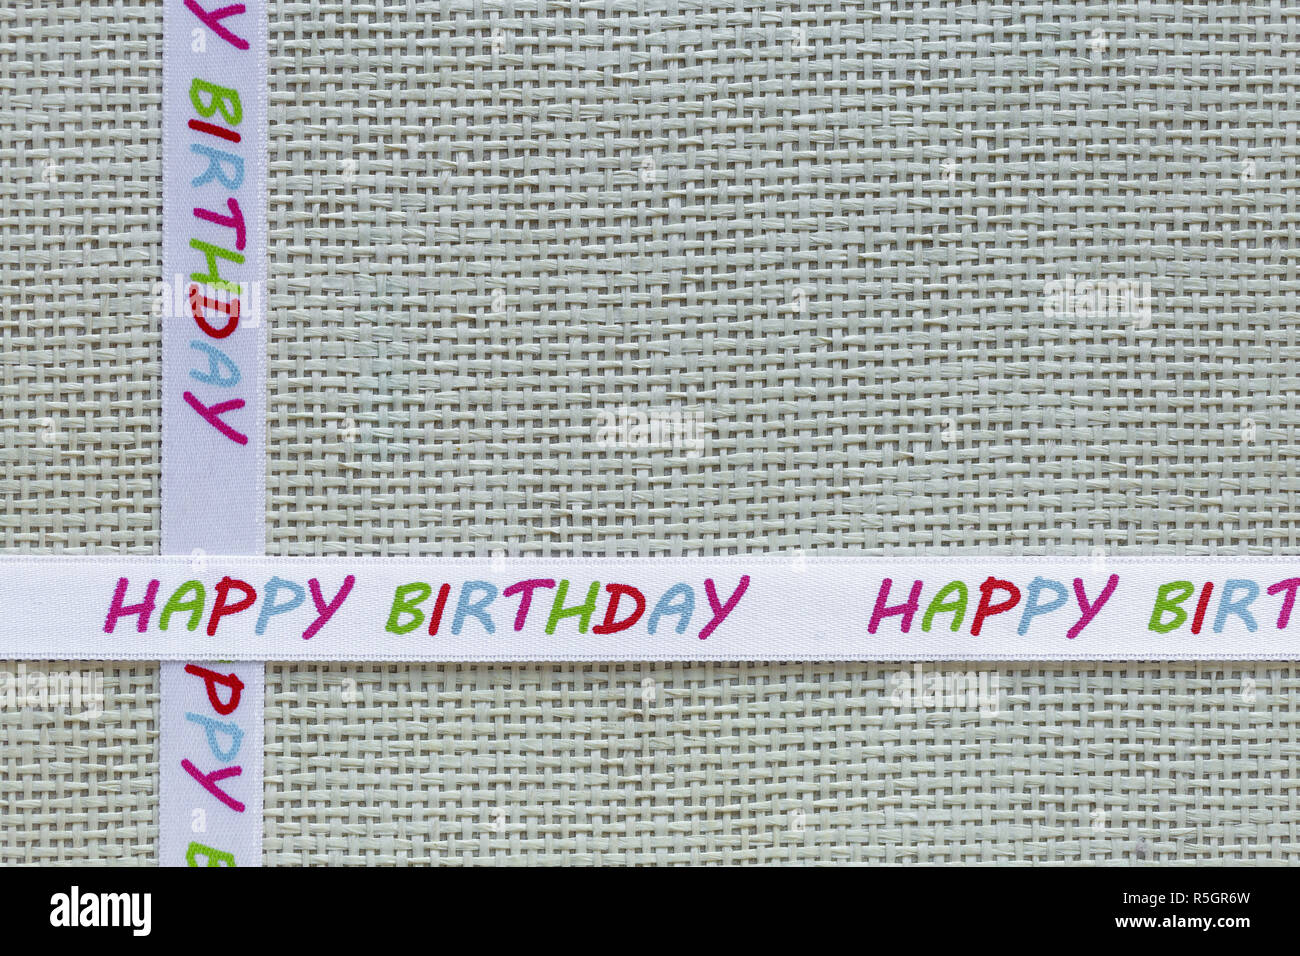 Knitted Box and Decorative Tape With Birthday Message - Stock Image